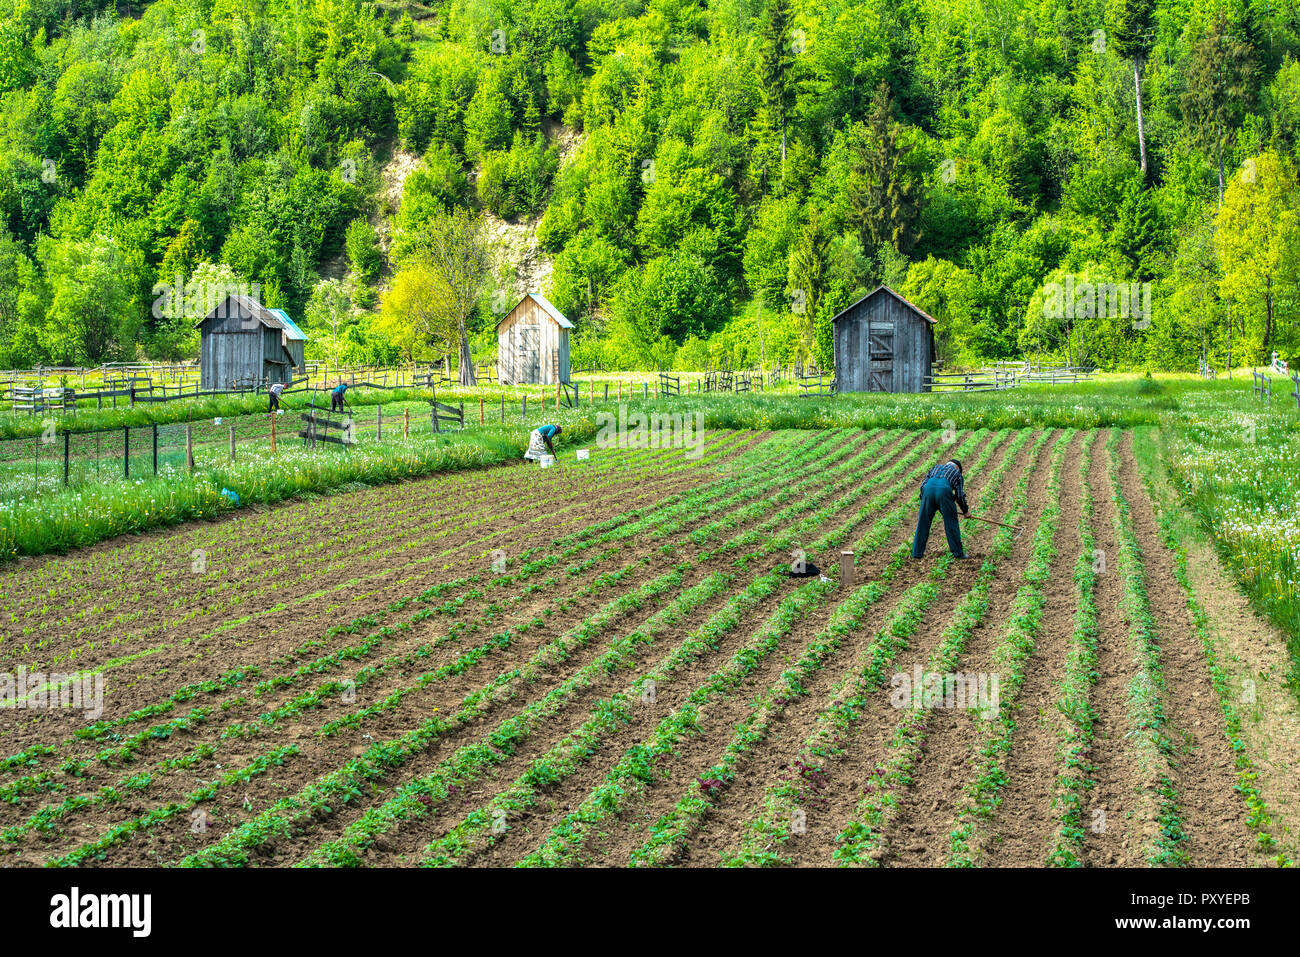 ROMANIA, BUKOVINA, People working on their small fields by hand - Stock Image